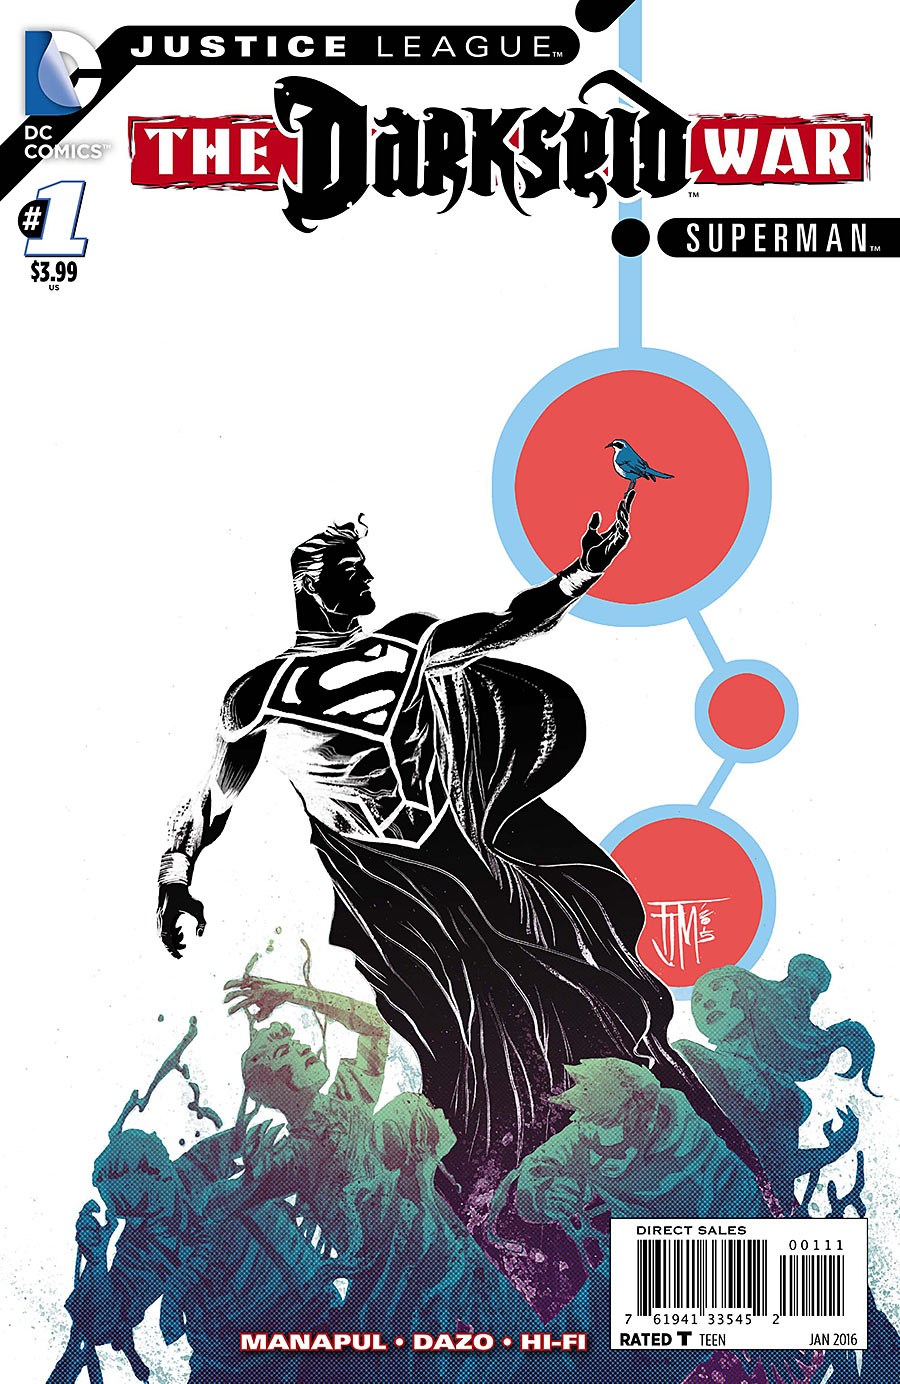 Justice League: The Darkseid War: Superman Vol 1 1